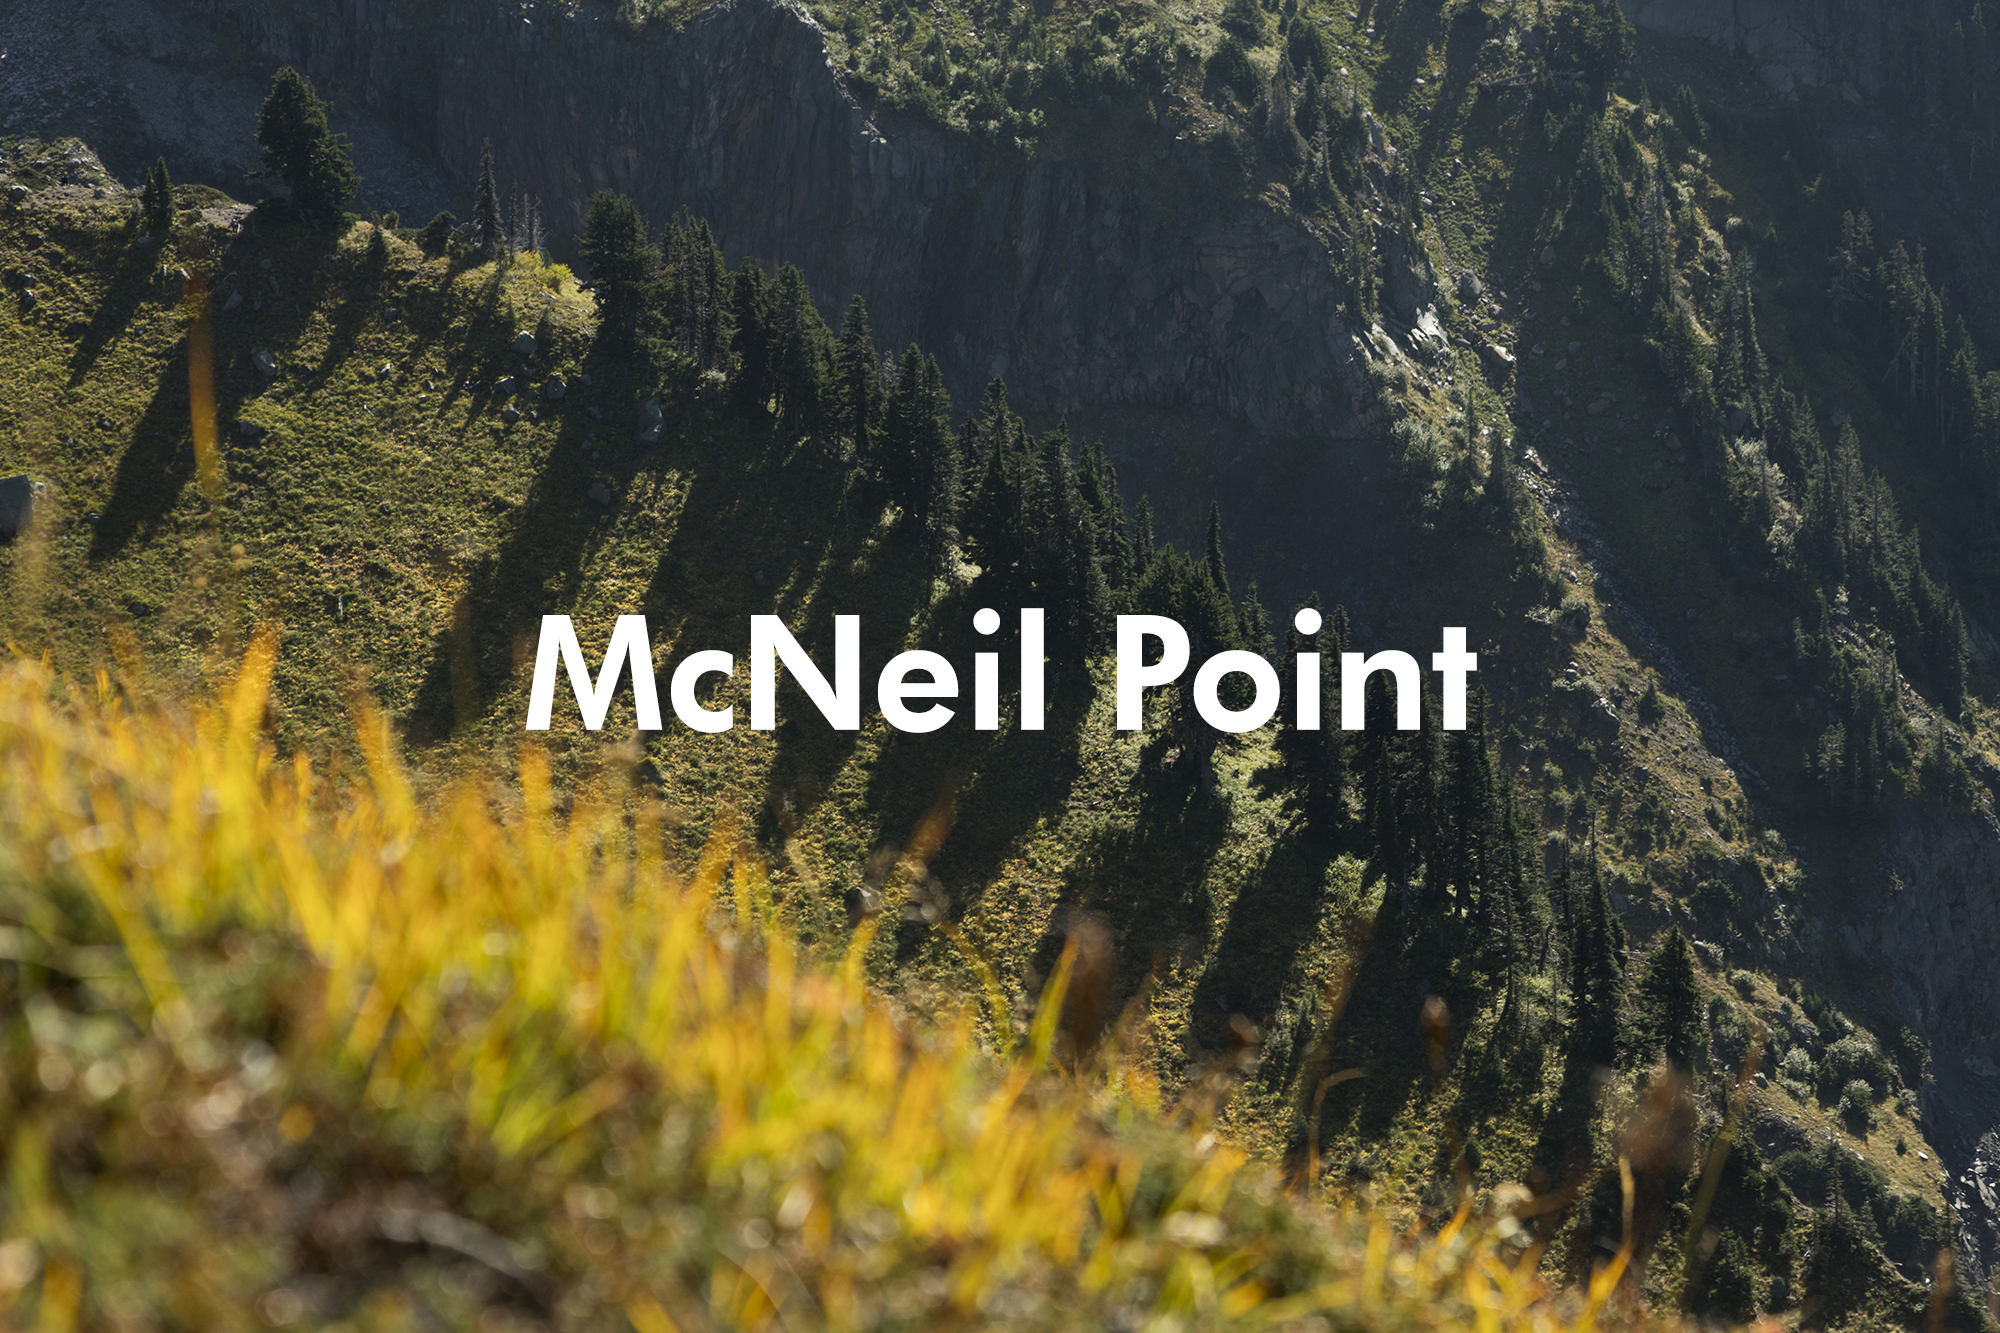 McNei Point - Mt. Hood, Oregon